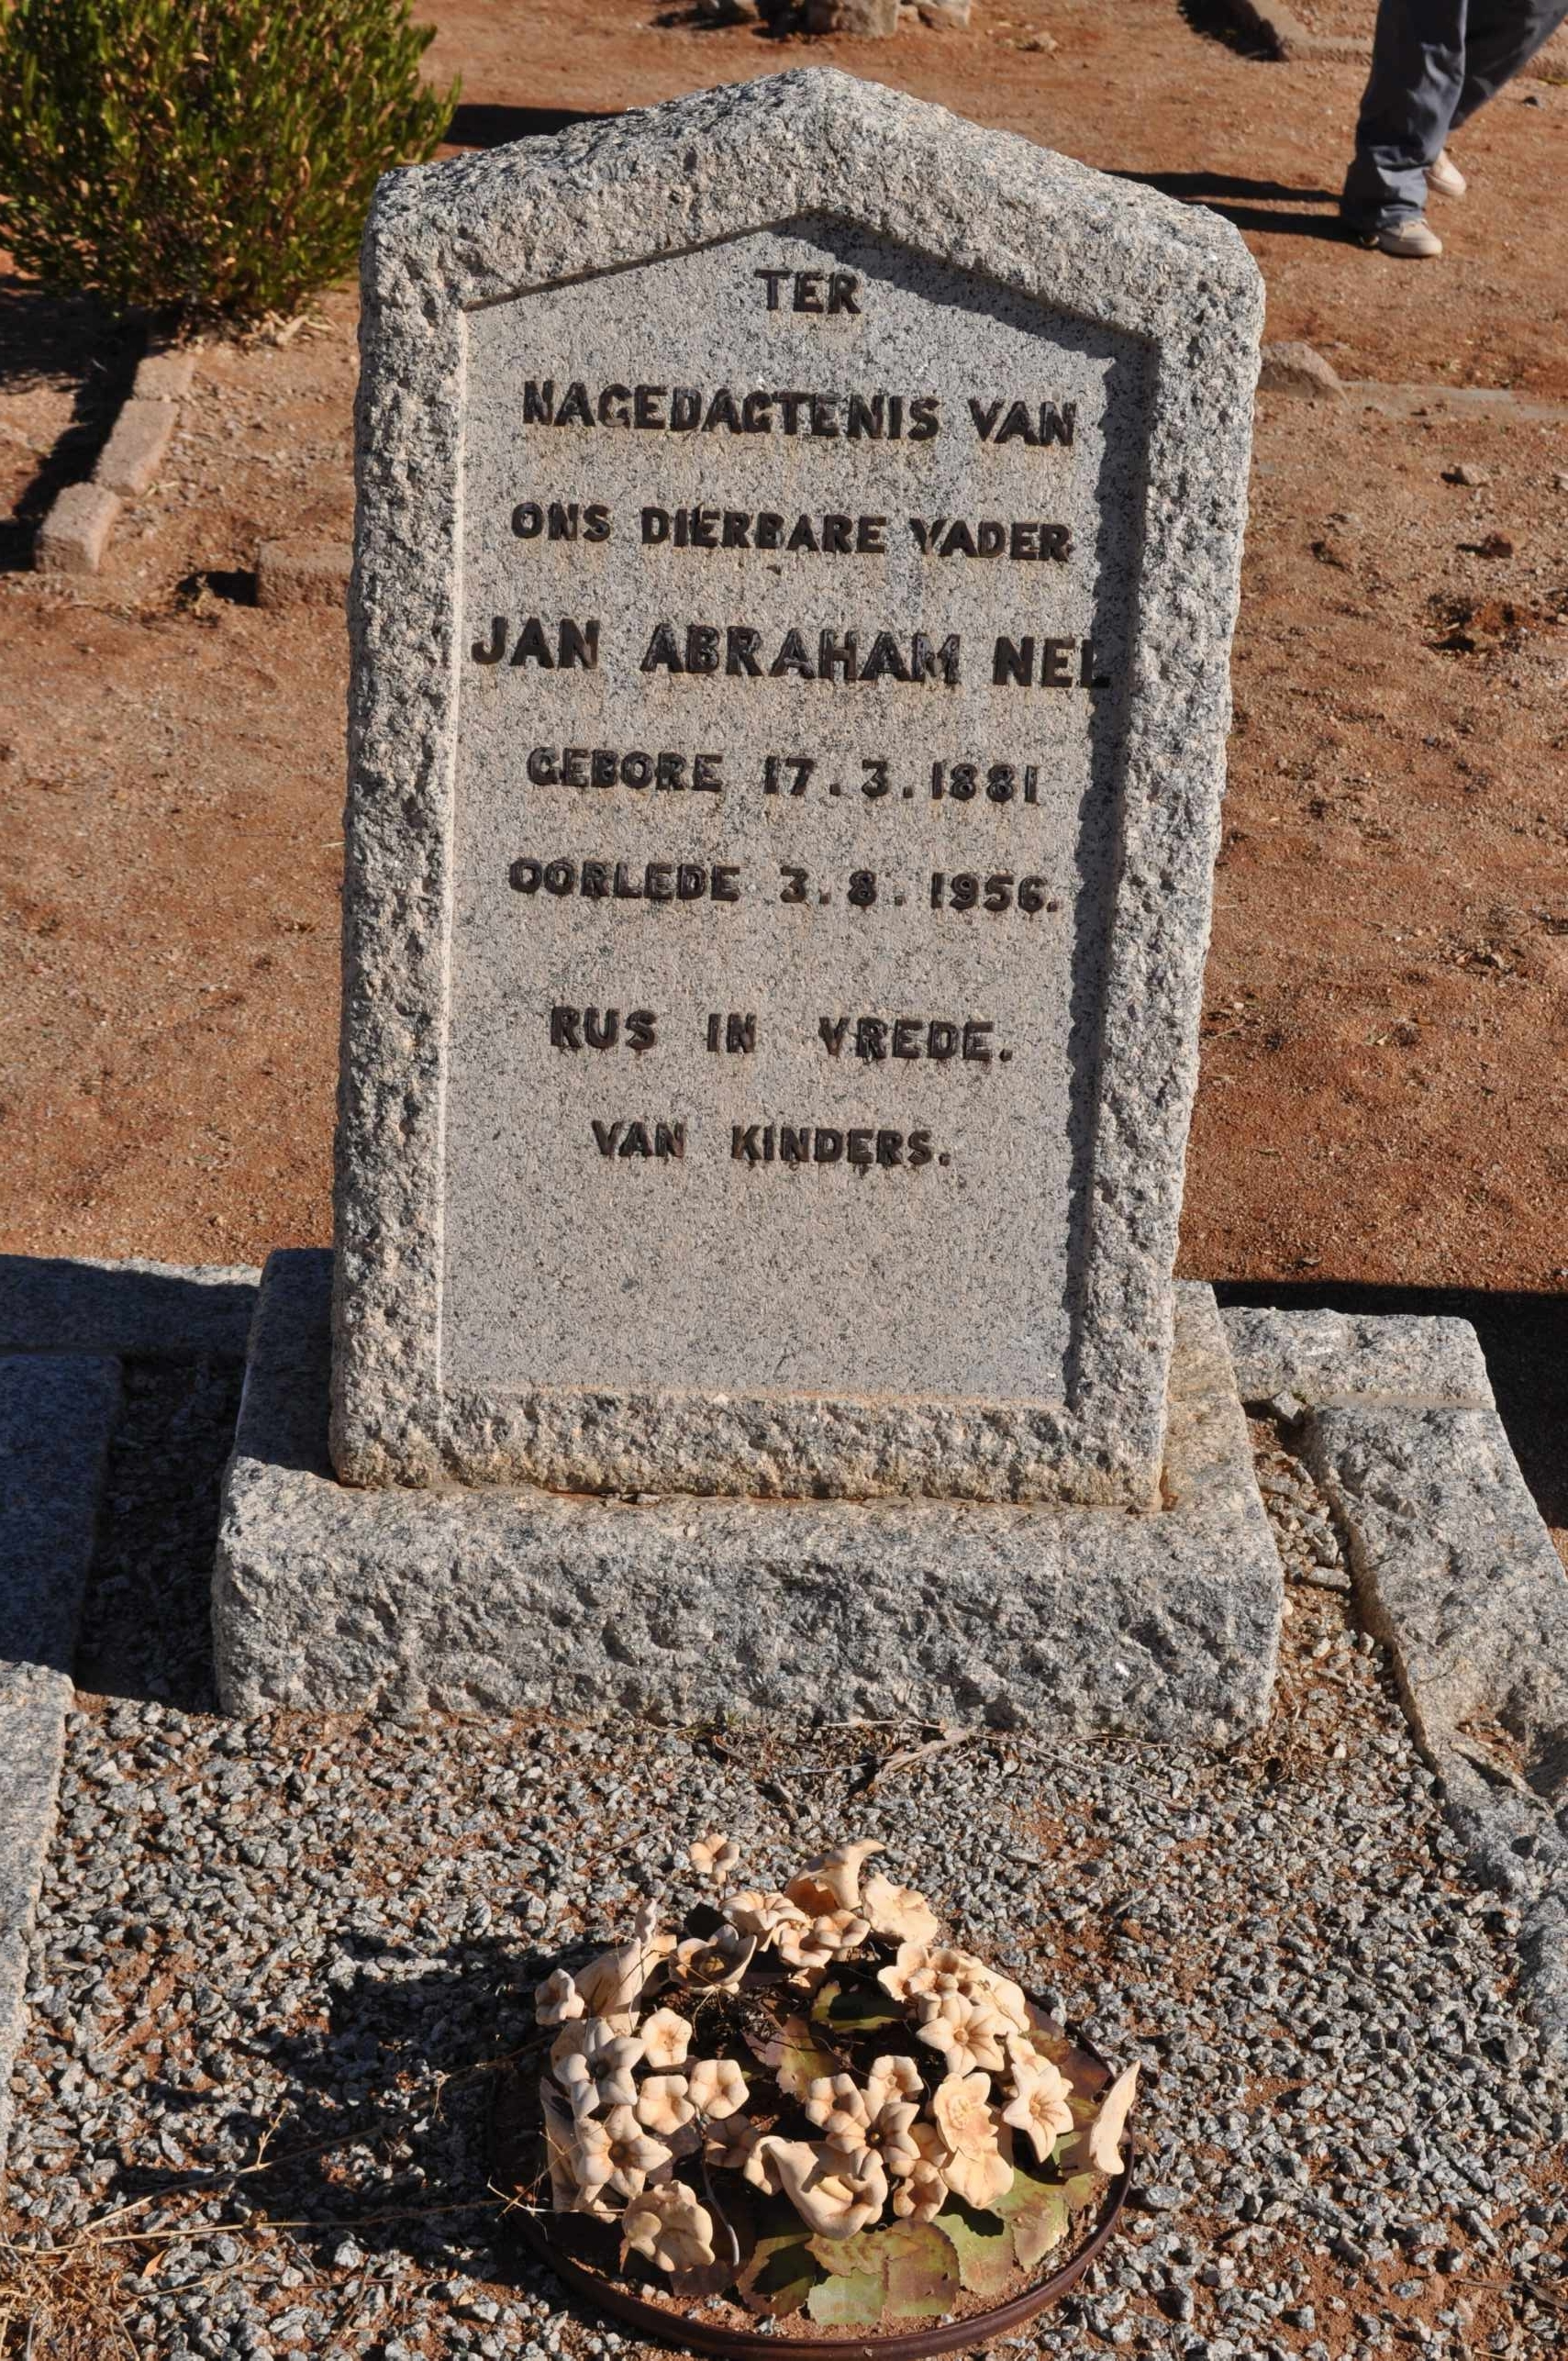 Nel, Jan Abraham born 17 March 1881 died 03 August 1965